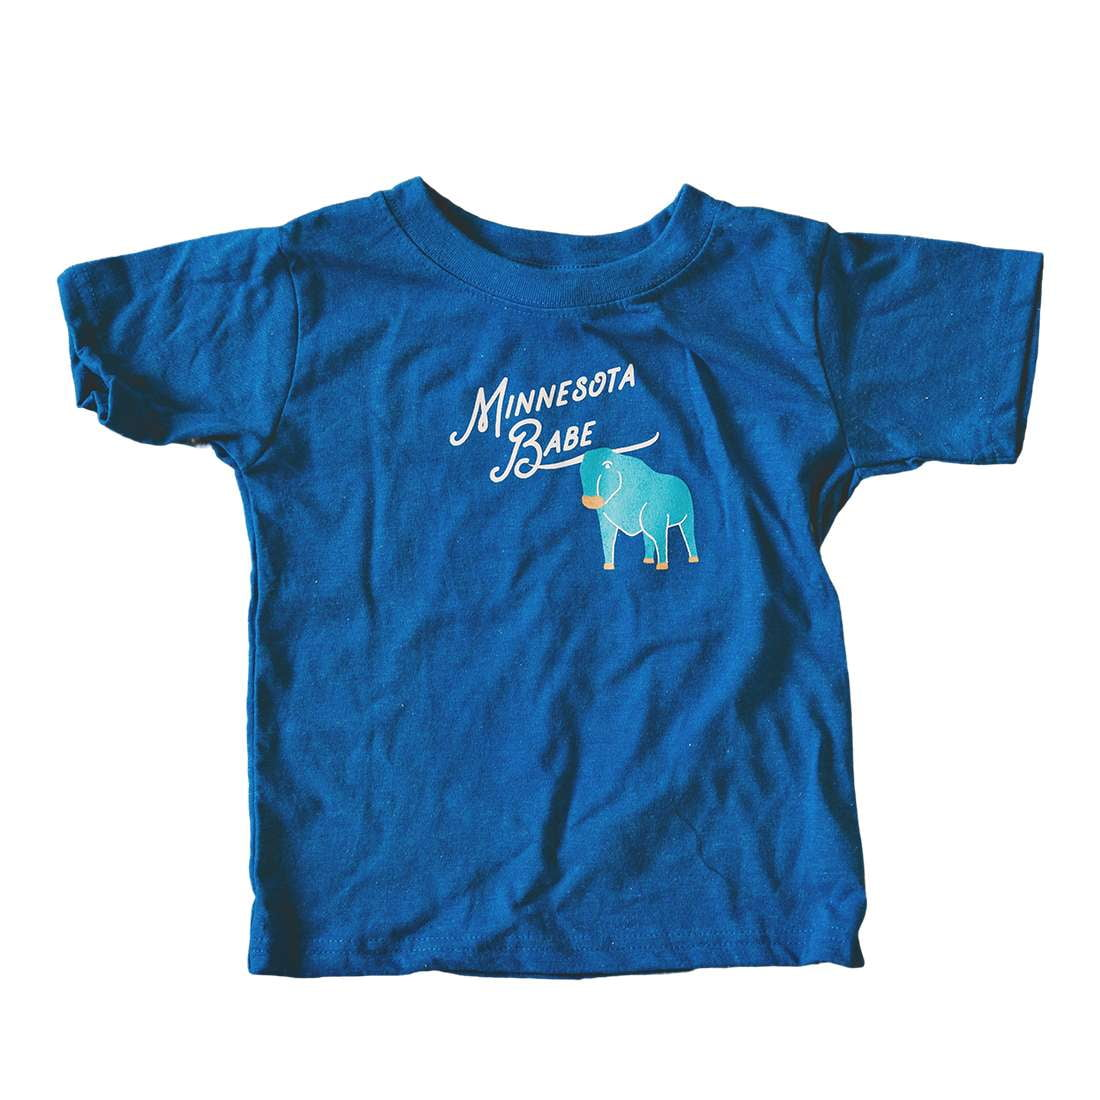 Minnesota Babe Kid's Tee - Wholesale - Sweetpea and Co.